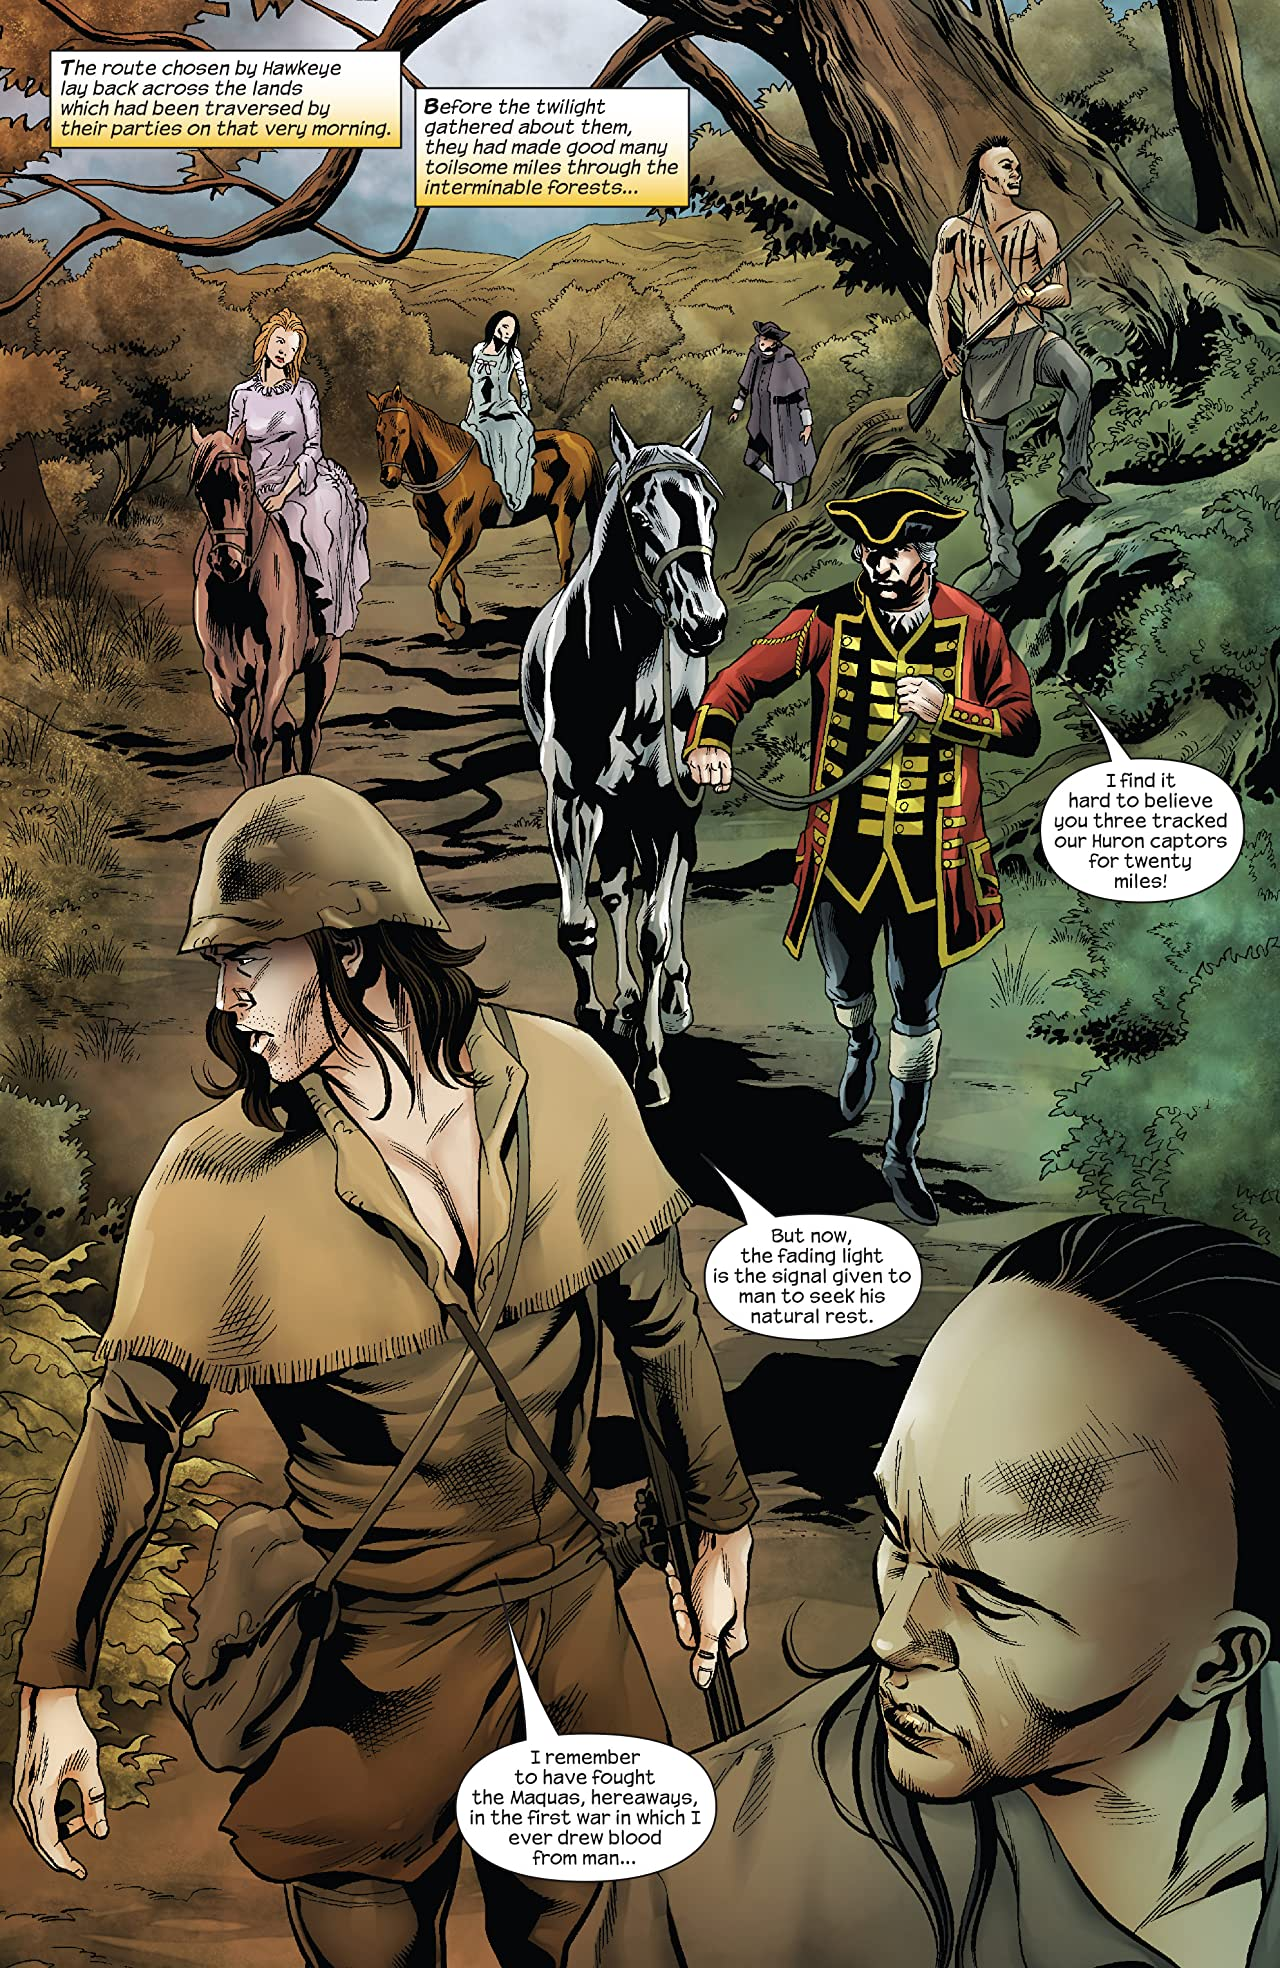 Marvel Illustrated: Last of the Mohicans (2007) #3 (of 6)